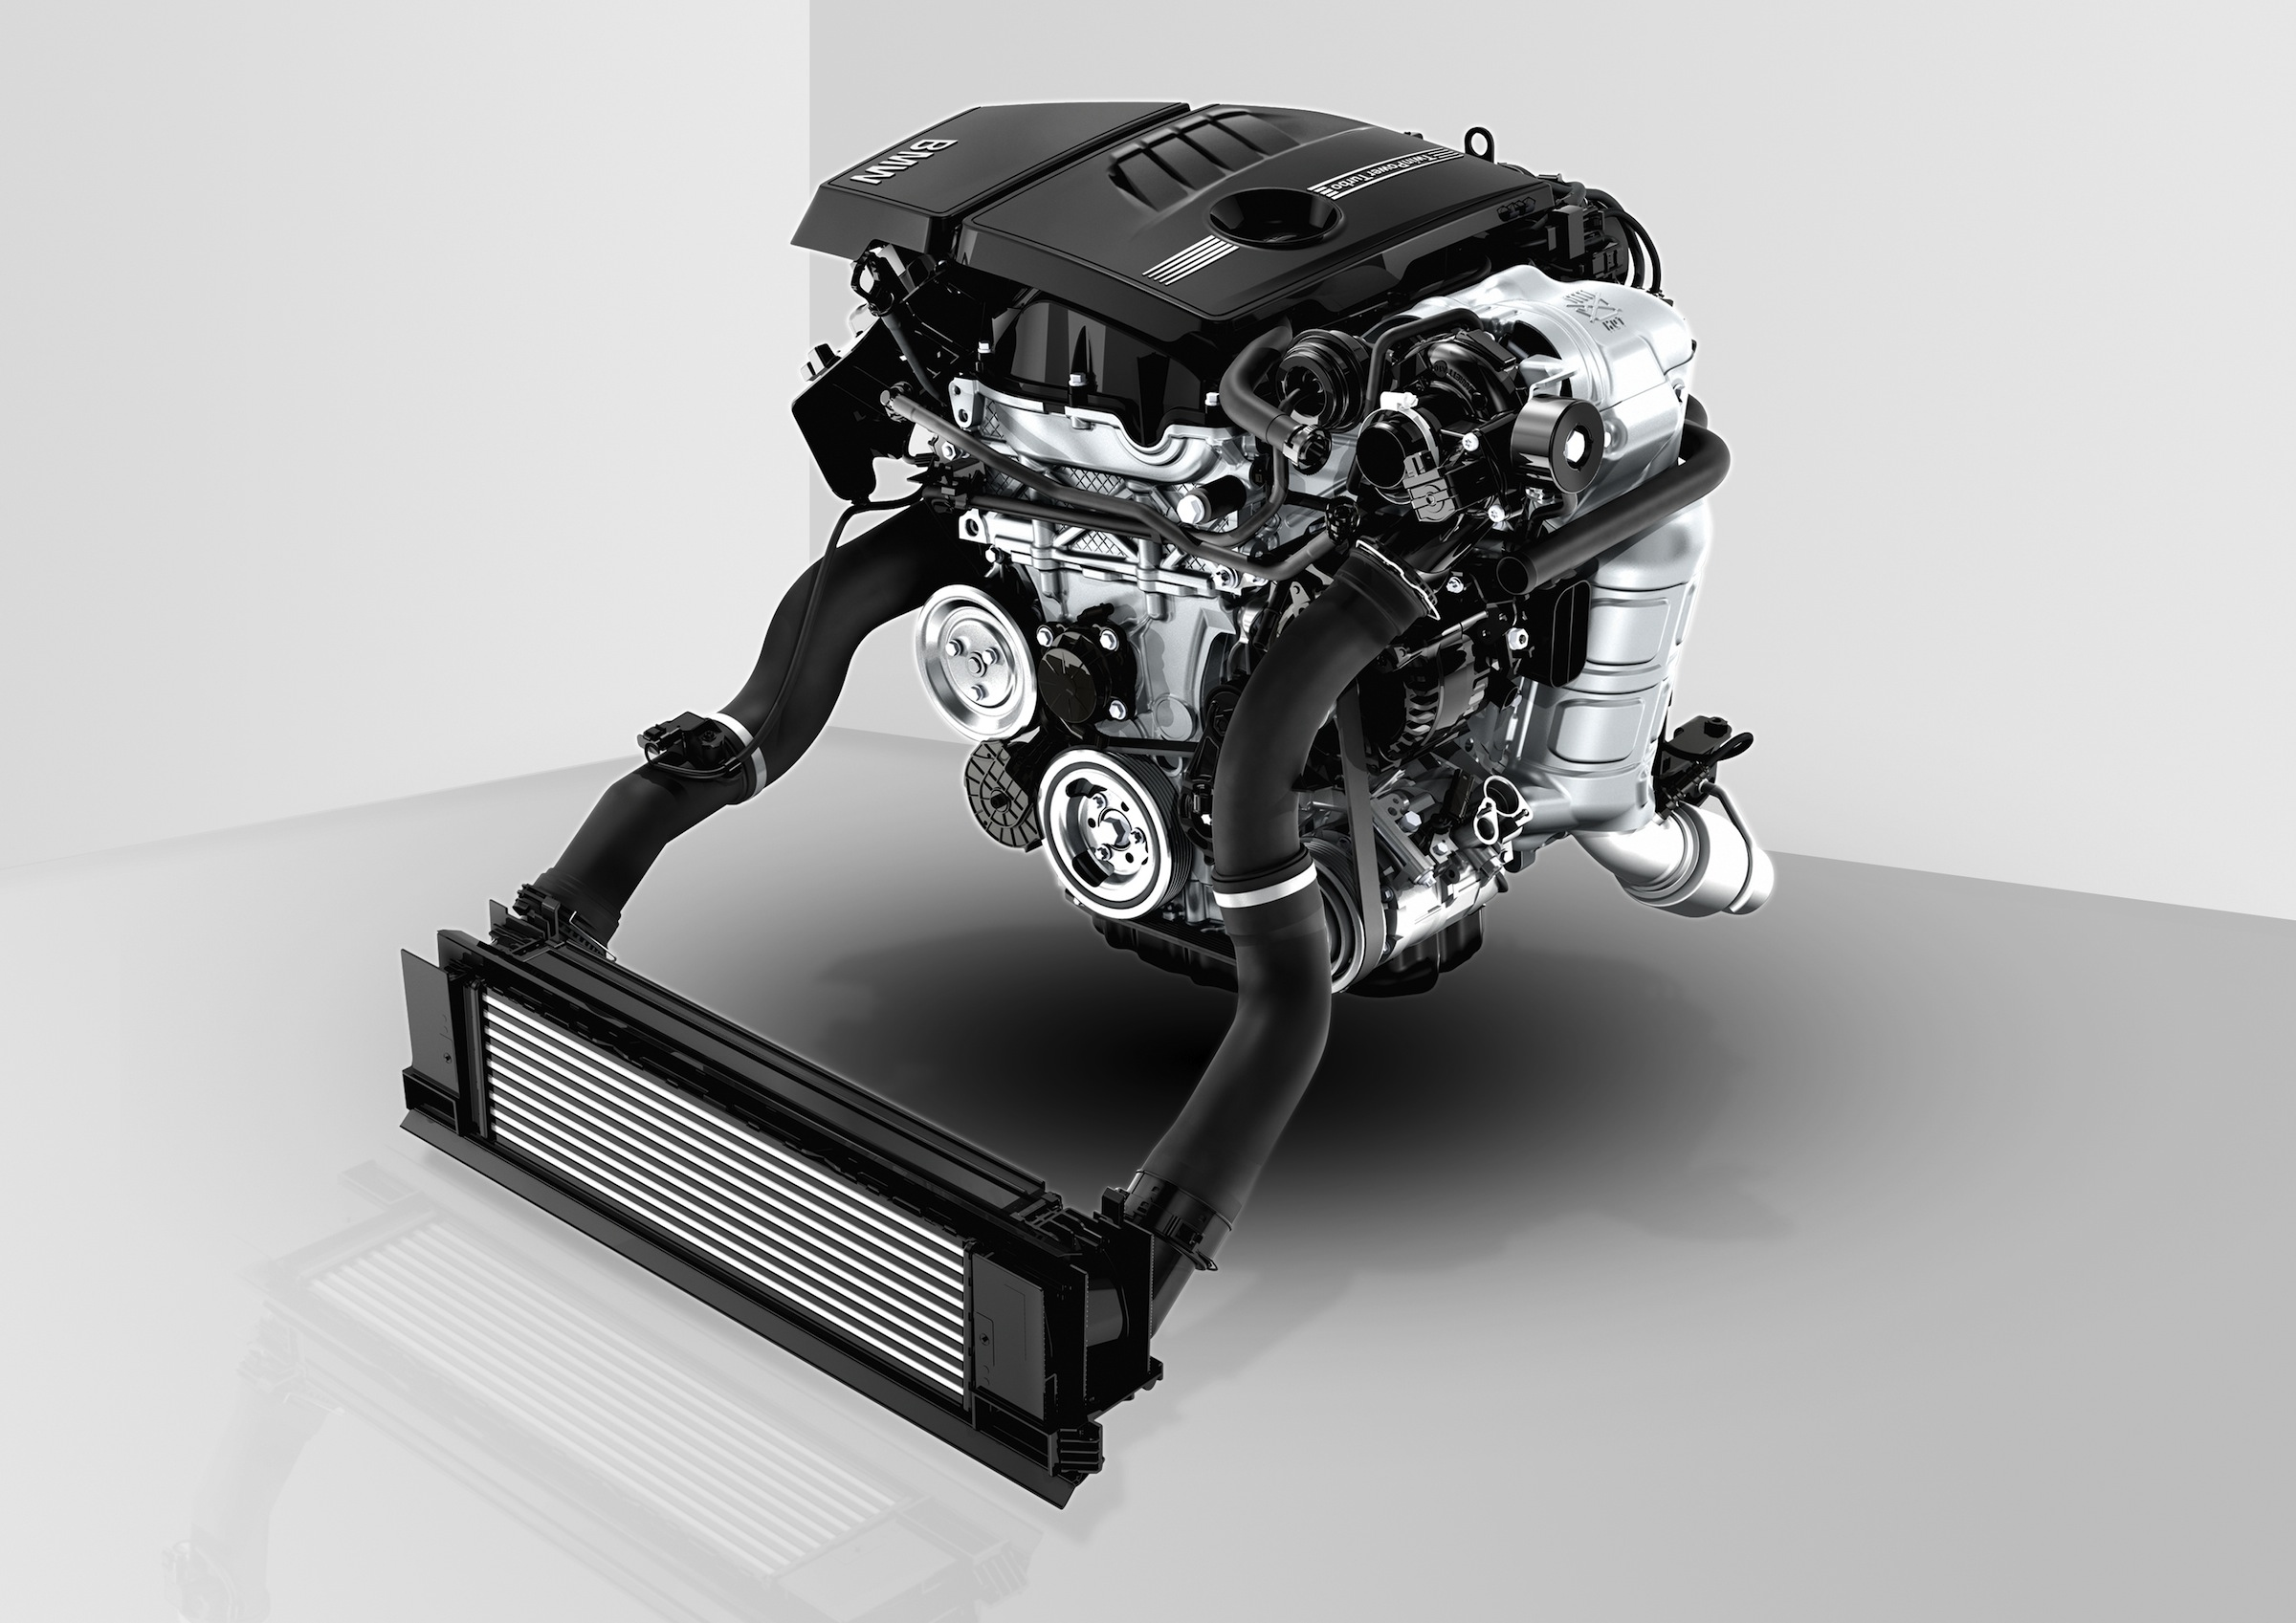 BMW N20 and N13/N18 Engines Win 2013 International Engine of the